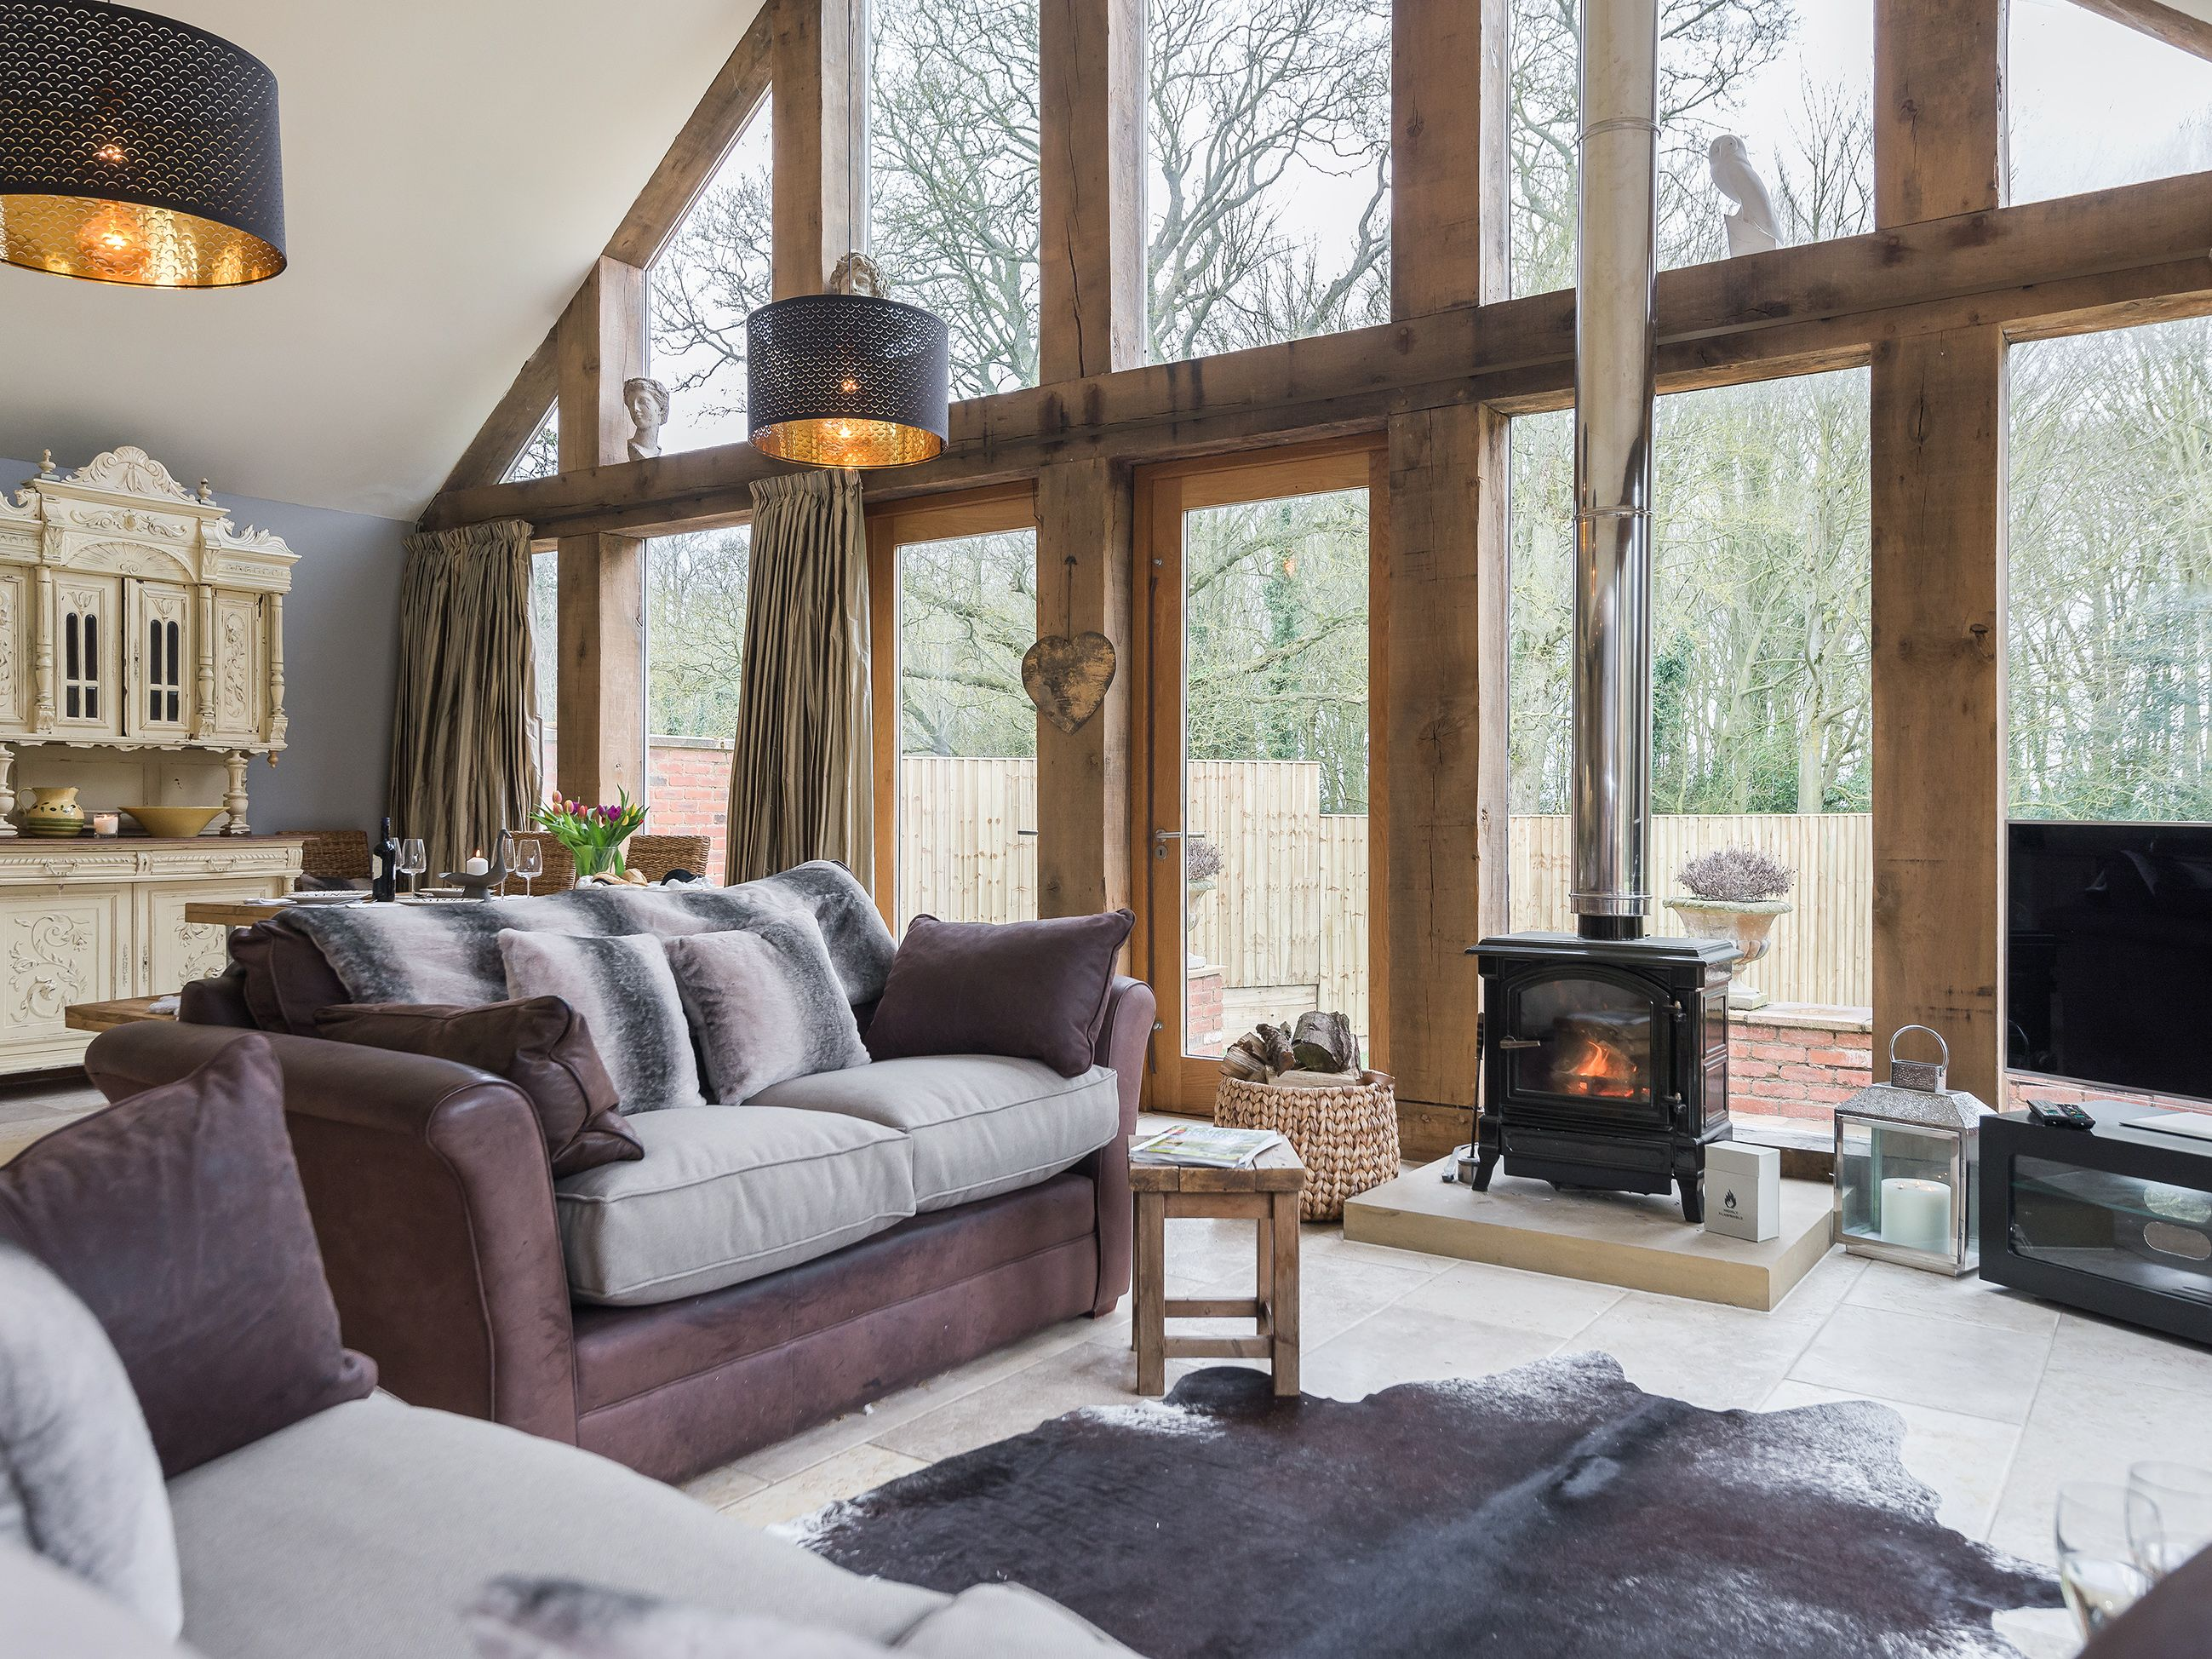 Lily Pad Lodge Ref Uk10956 In Market Stainton Near Louth